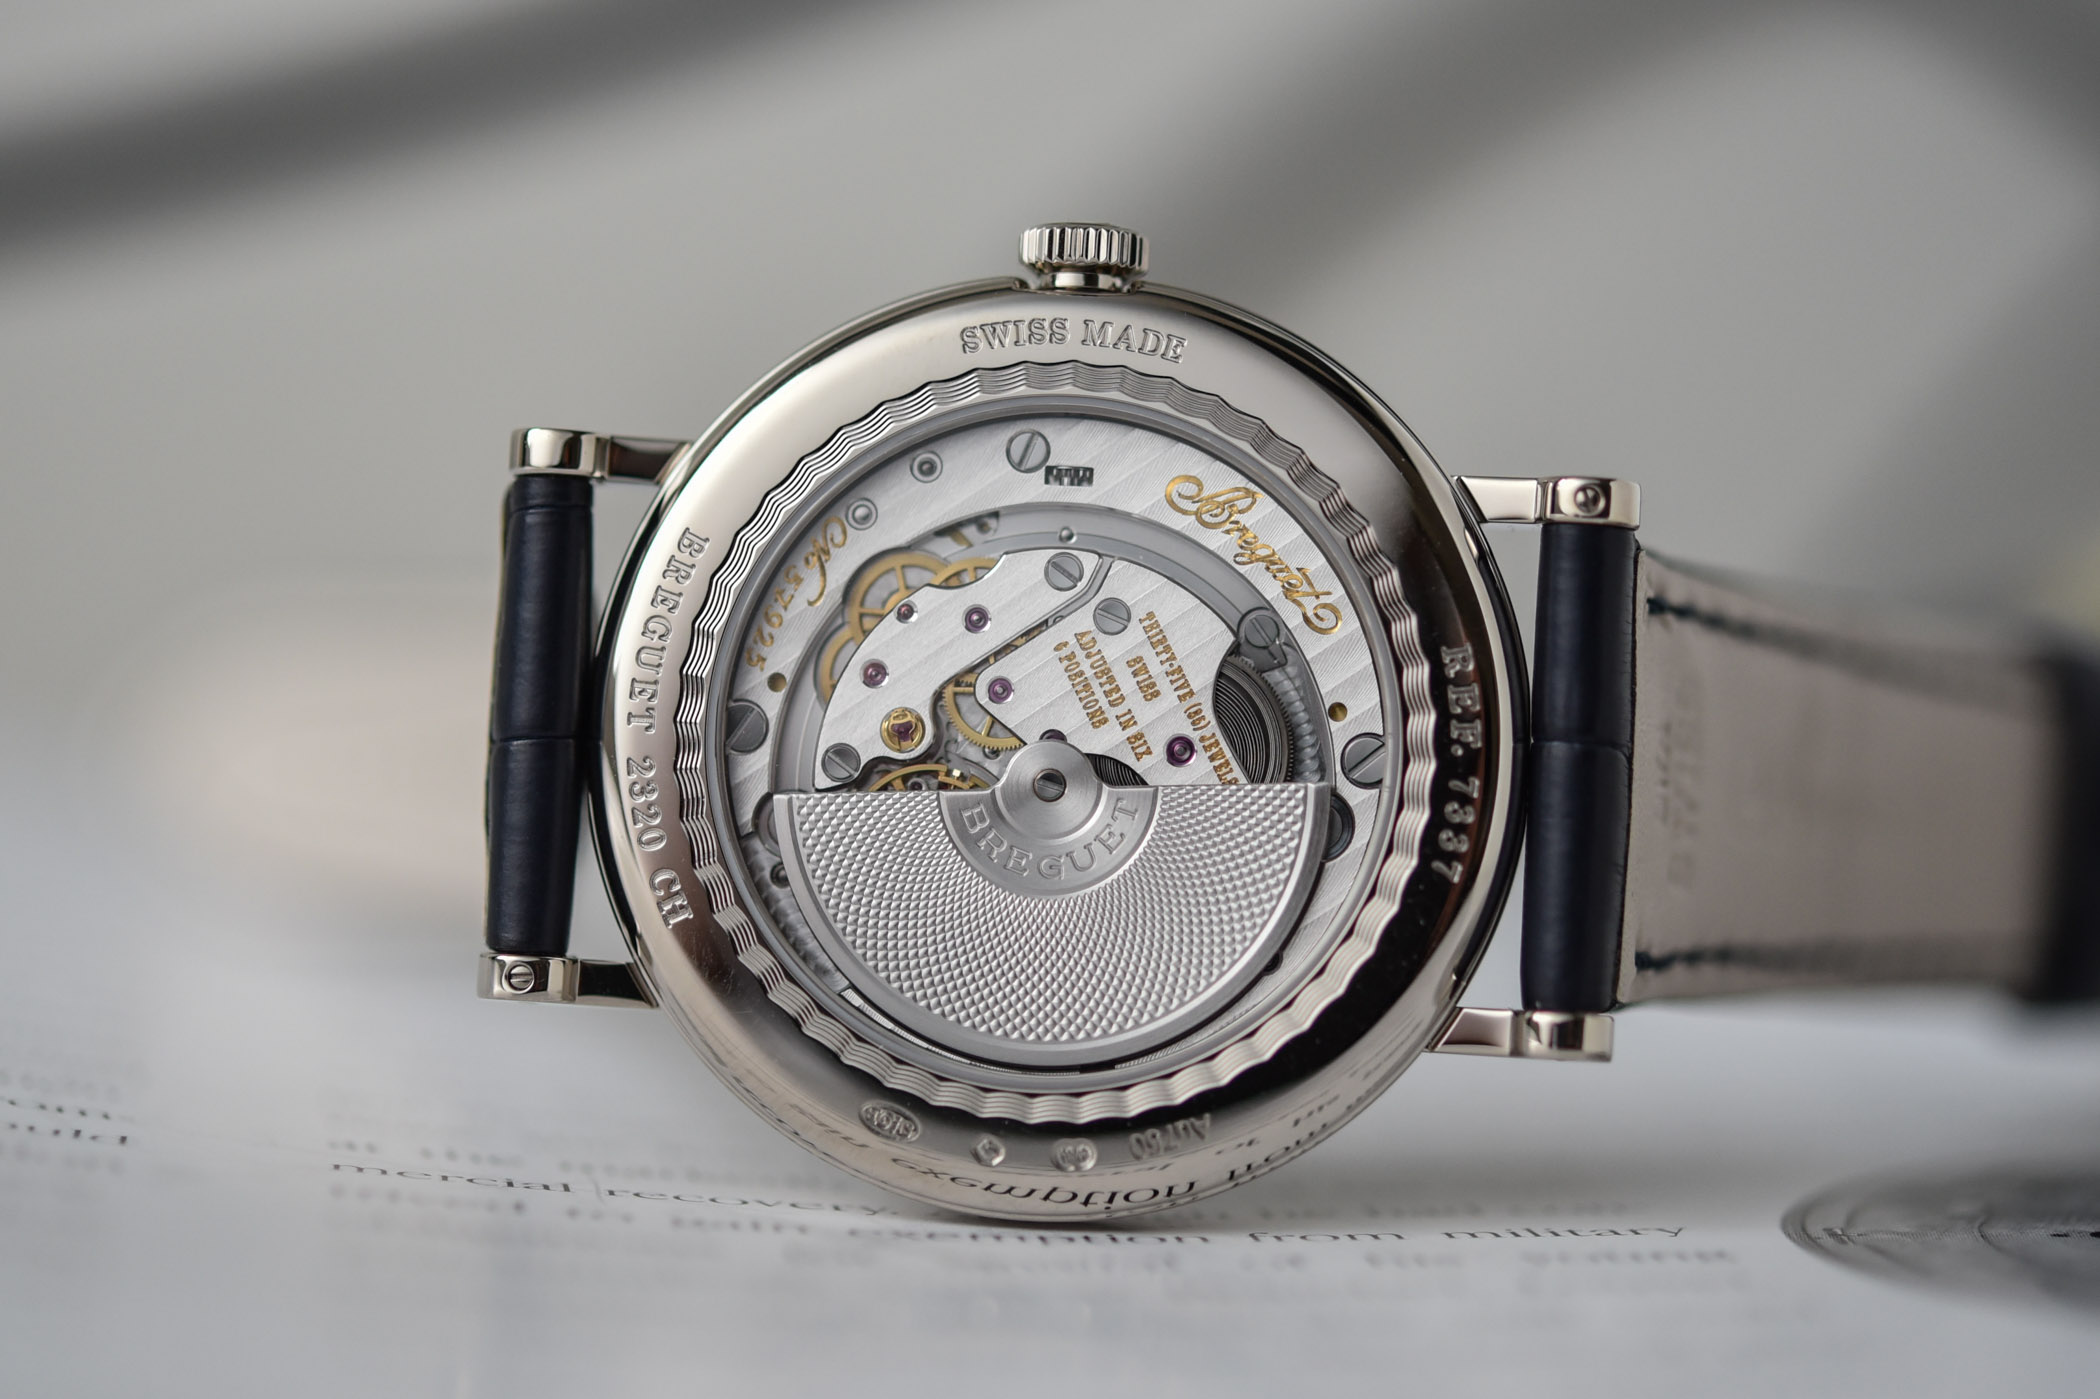 2020 Breguet Classique 7337 Moon and Calendar Chinoise